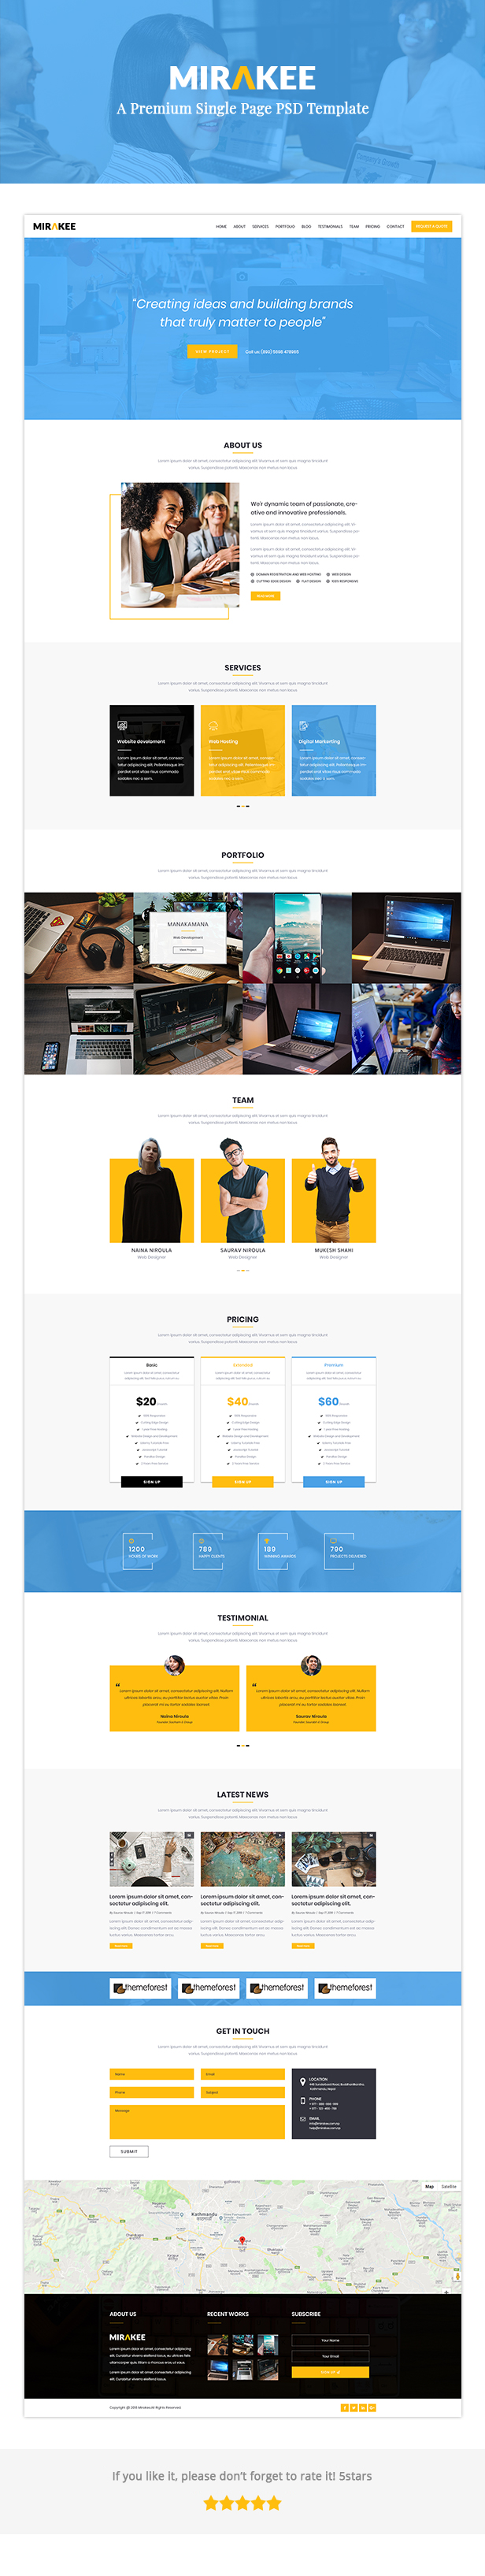 Mirakee – A Multipurpose Single Page PSD Template - 1